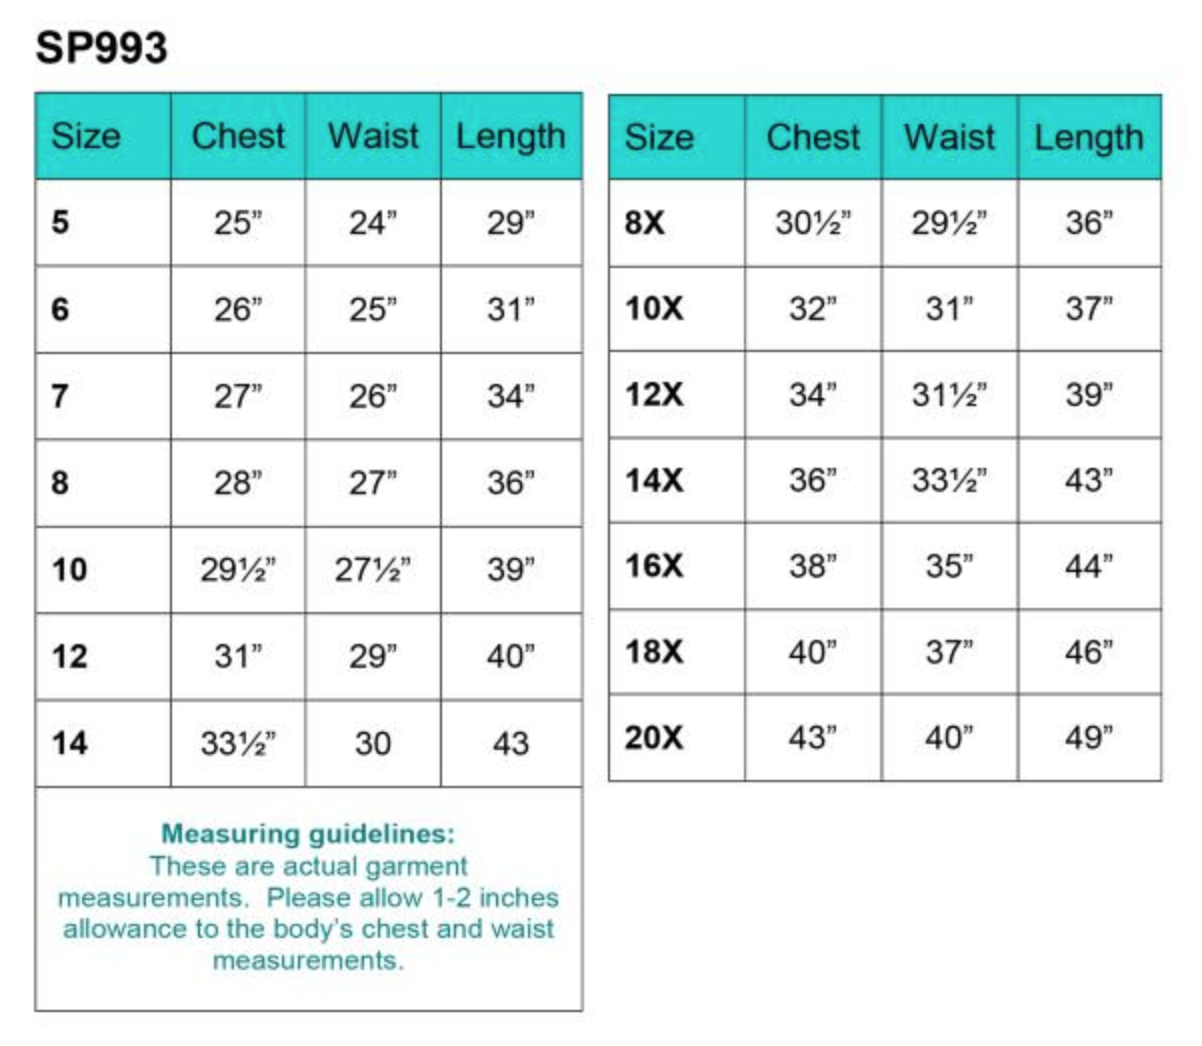 sizing-chart-sp993.png